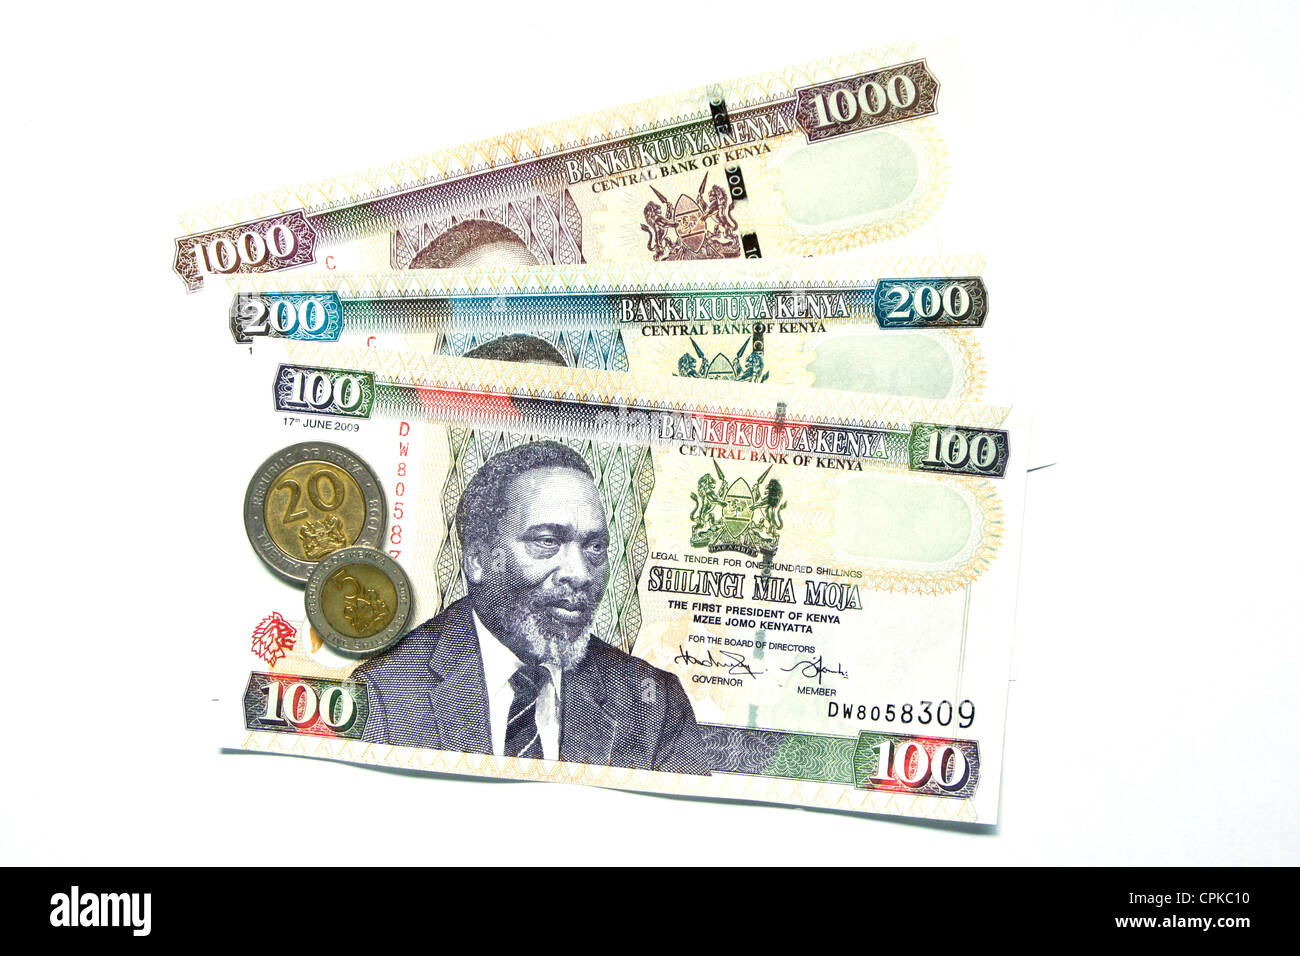 Kenya Shilling Stock Photos Kenya Shilling Stock Images Alamy